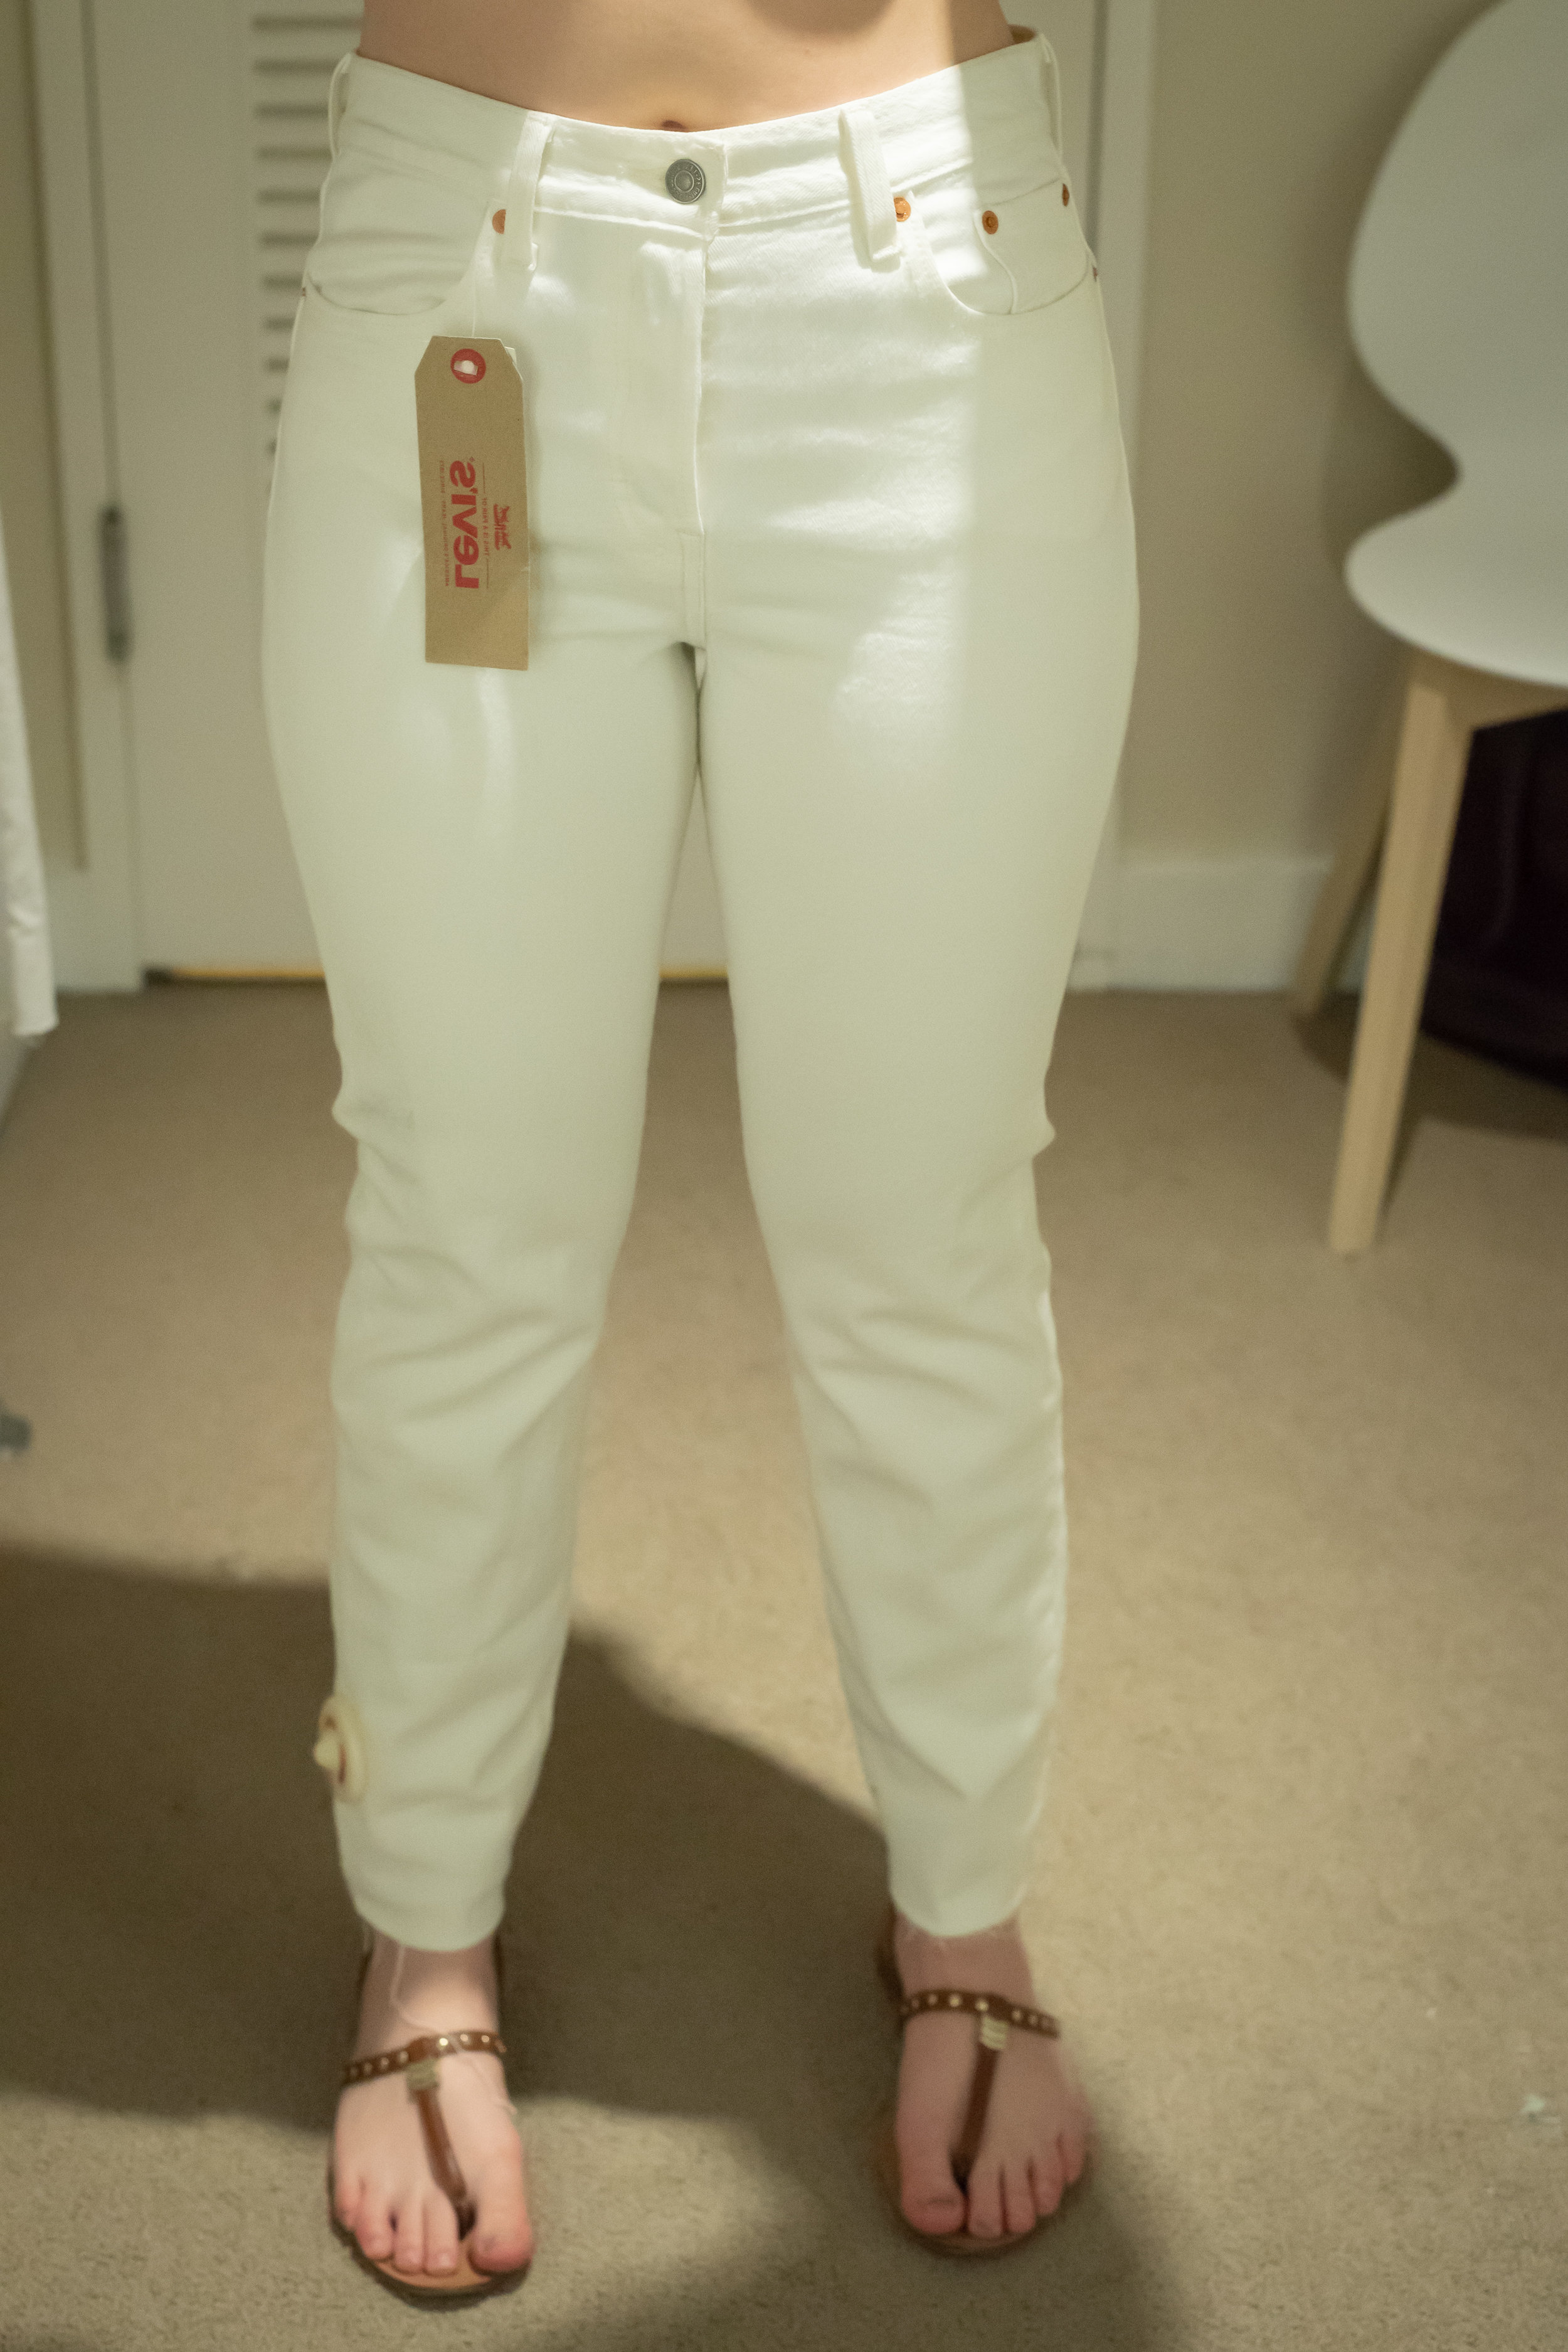 Levi's Wedgie Fit Jeans - Size 29 - Front View